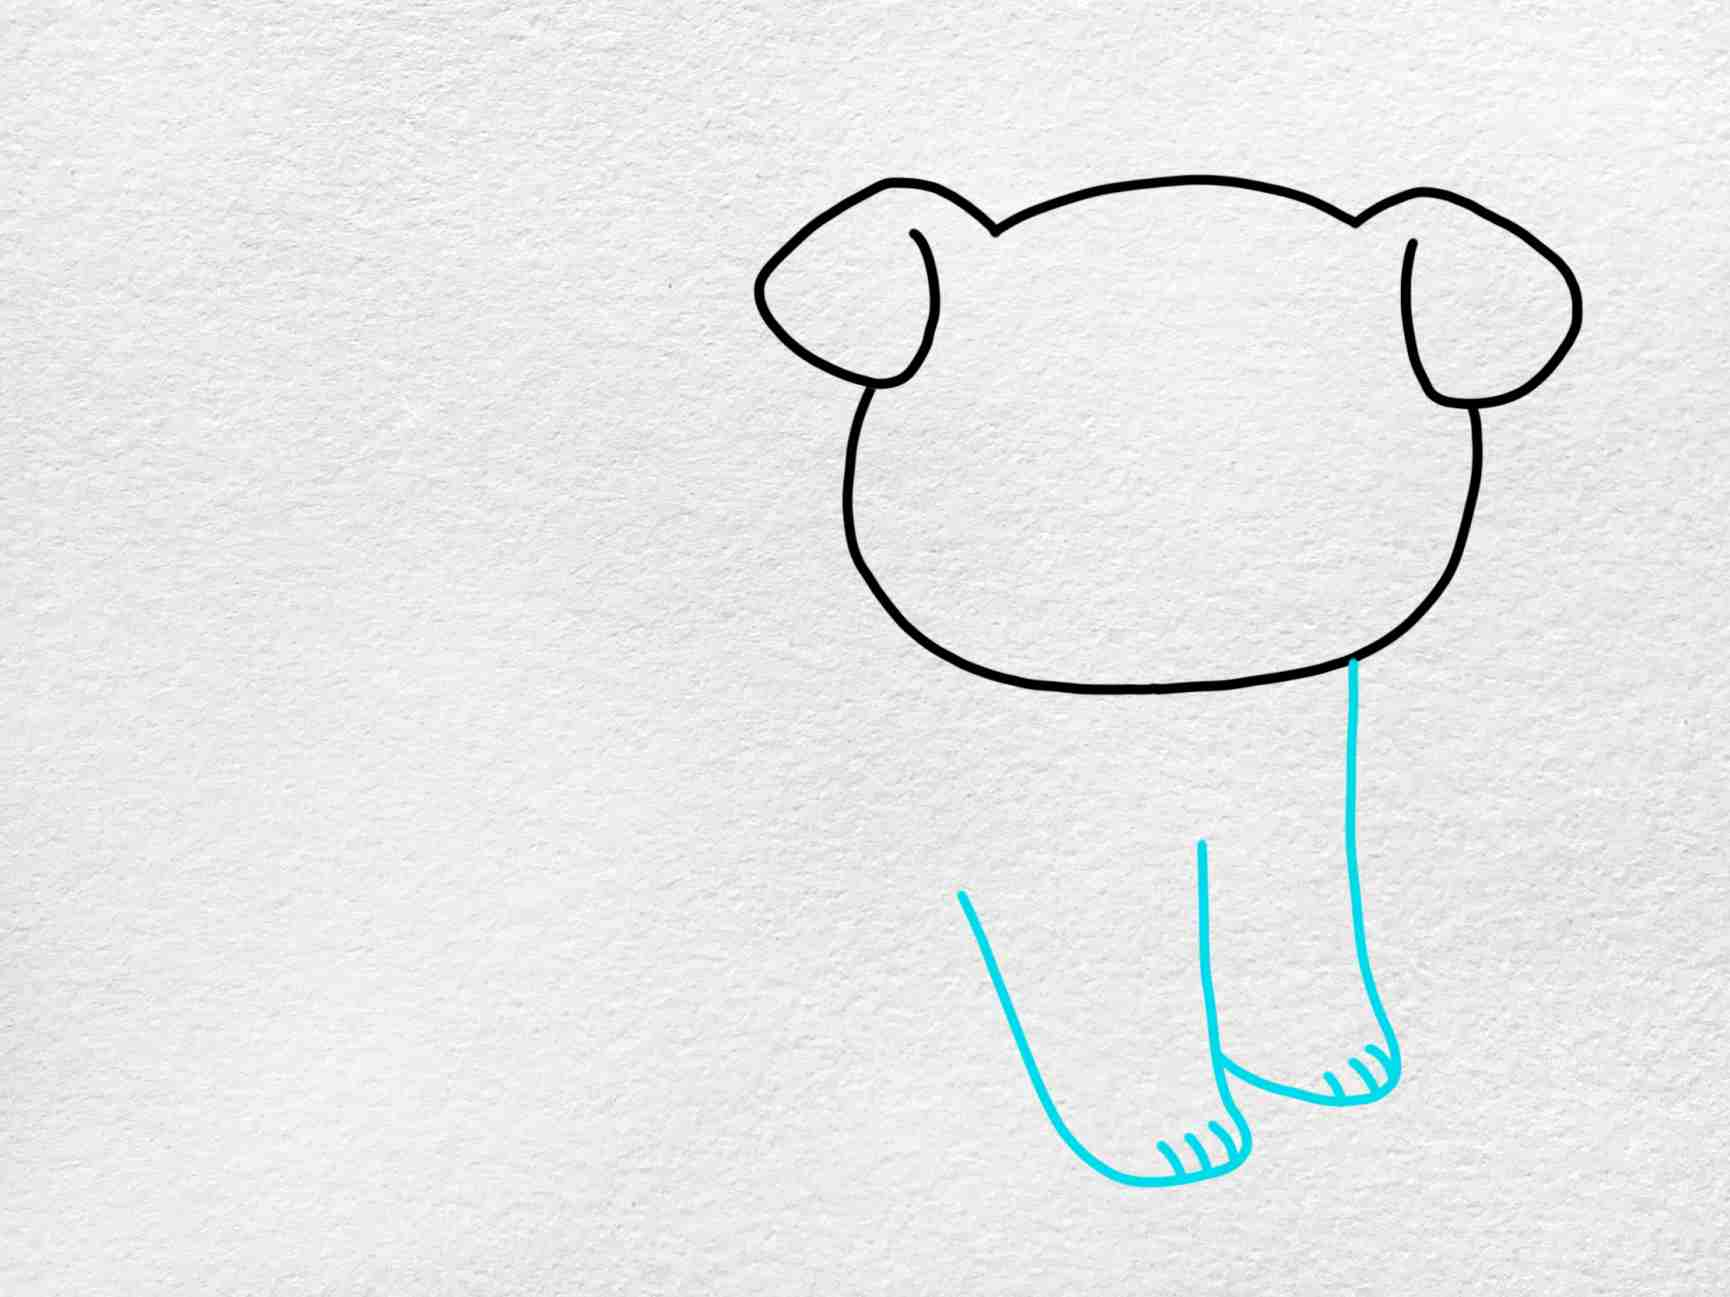 How To Draw A Bulldog: Step 3